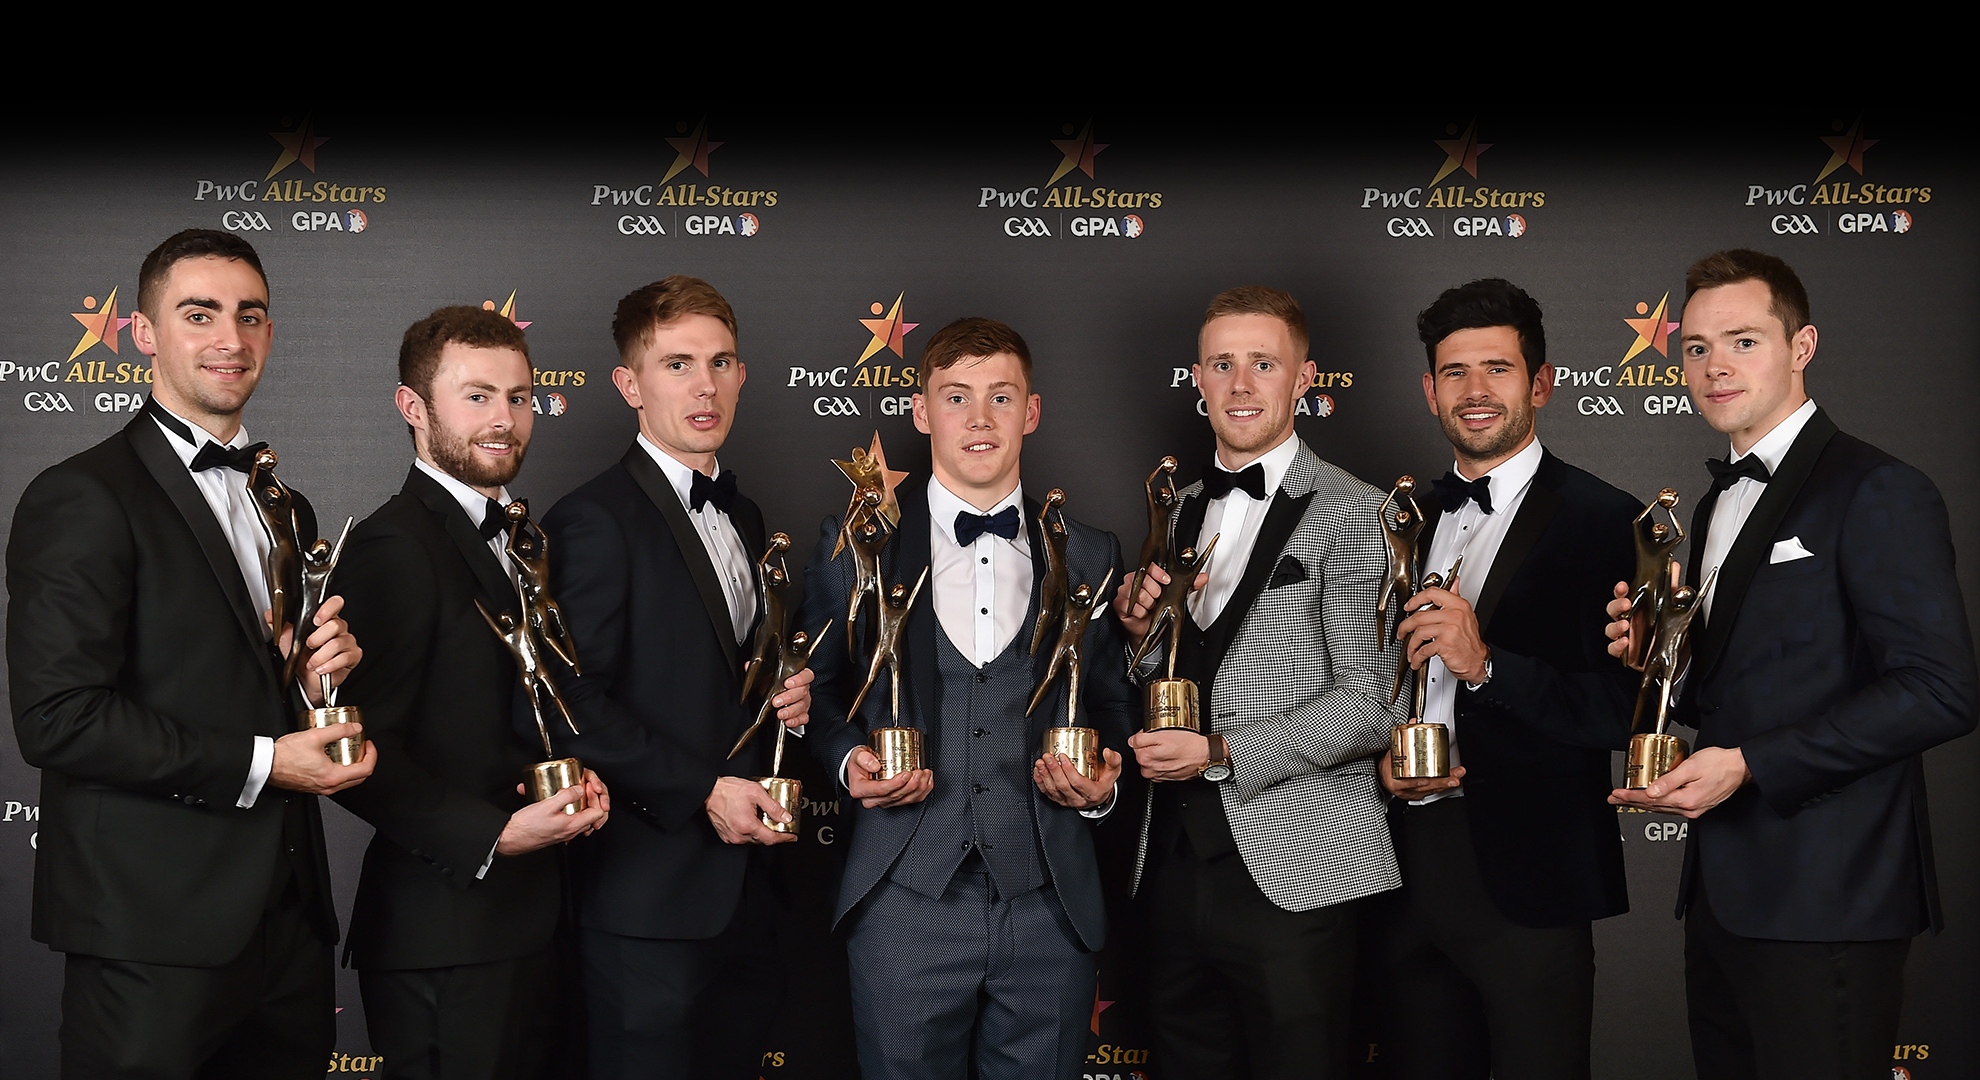 Dublin footballers, from left, James McCarthy, Jack McCaffrey, Michael Fitzsimons, Con O'Callaghan, Paul Mannion, Cian O'Sullivan and Dean Rock pictured with their awards during the PwC All Stars 2017 at the Convention Centre in Dublin. All wearing Collar & Cuff